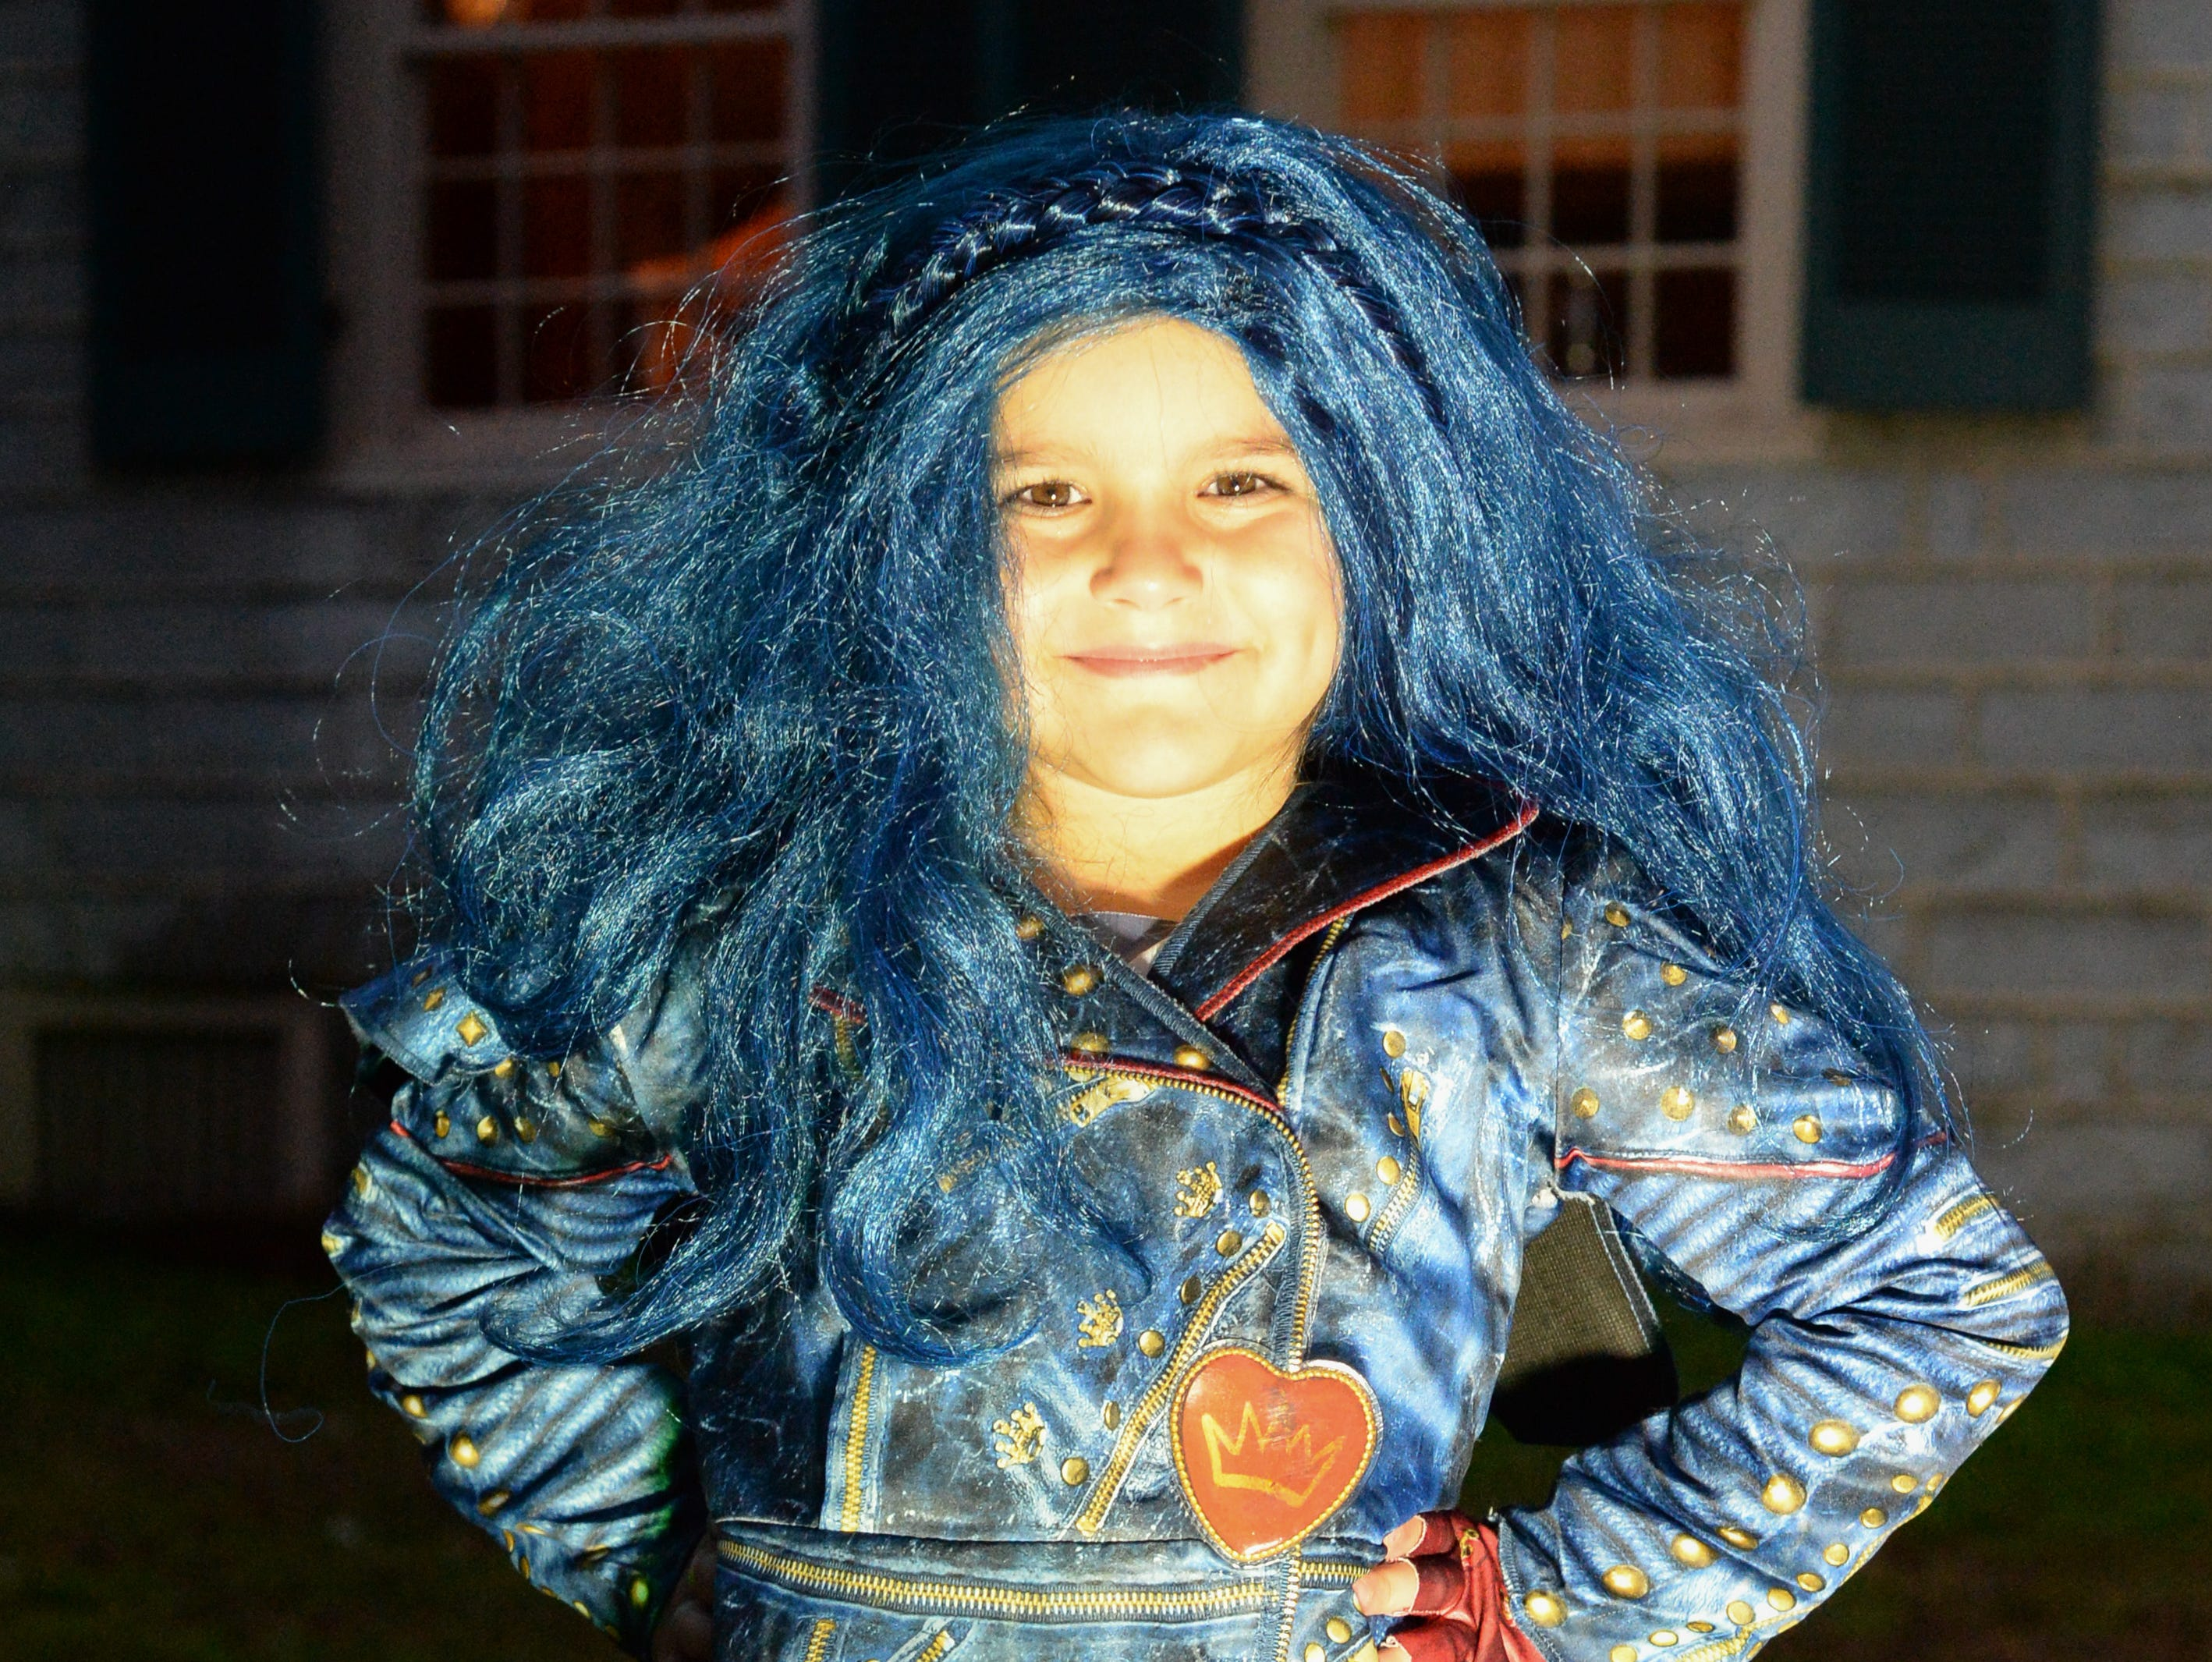 Alexandria Qirilla came prepared for the Castle of Villains trick or treating event at Historic Rock Castle in Hendersonville on Friday, Oct. 26.